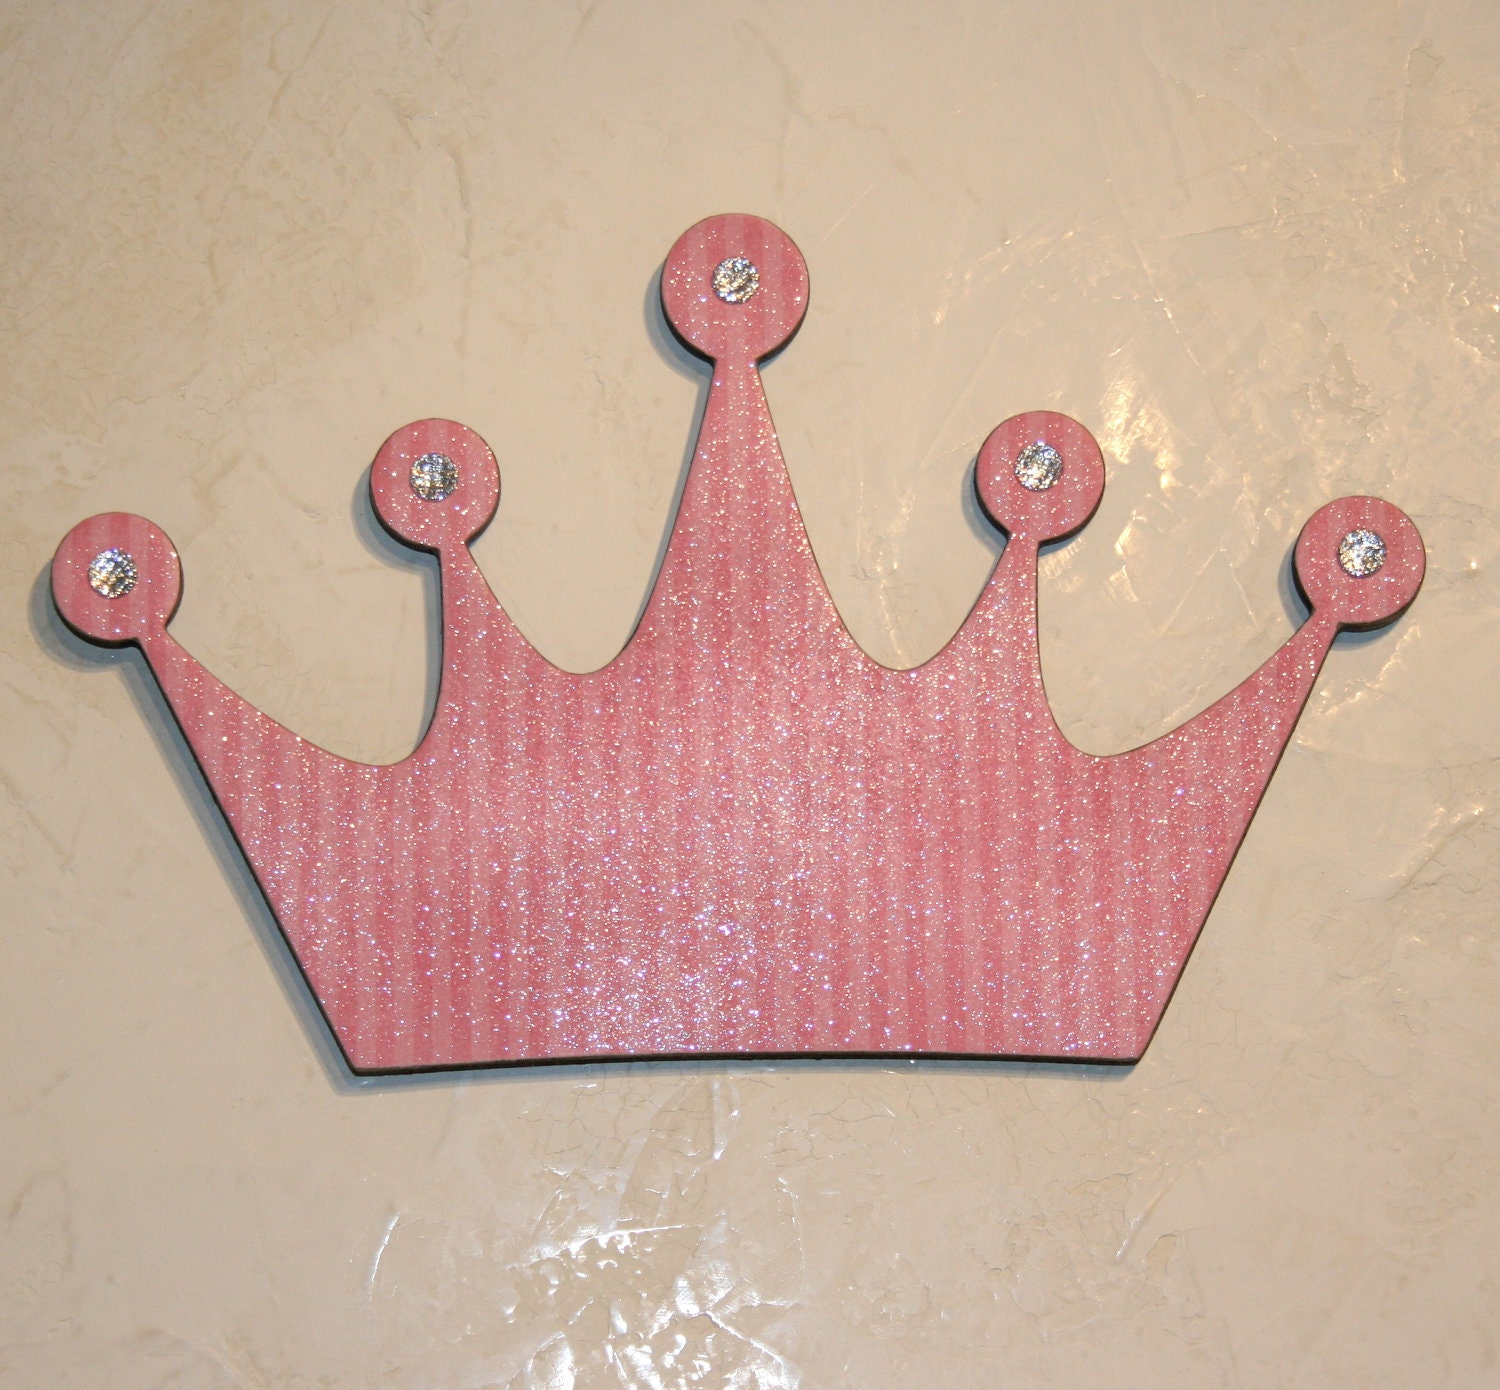 Black Crown Wall Decor : Pink princess crown wall decor